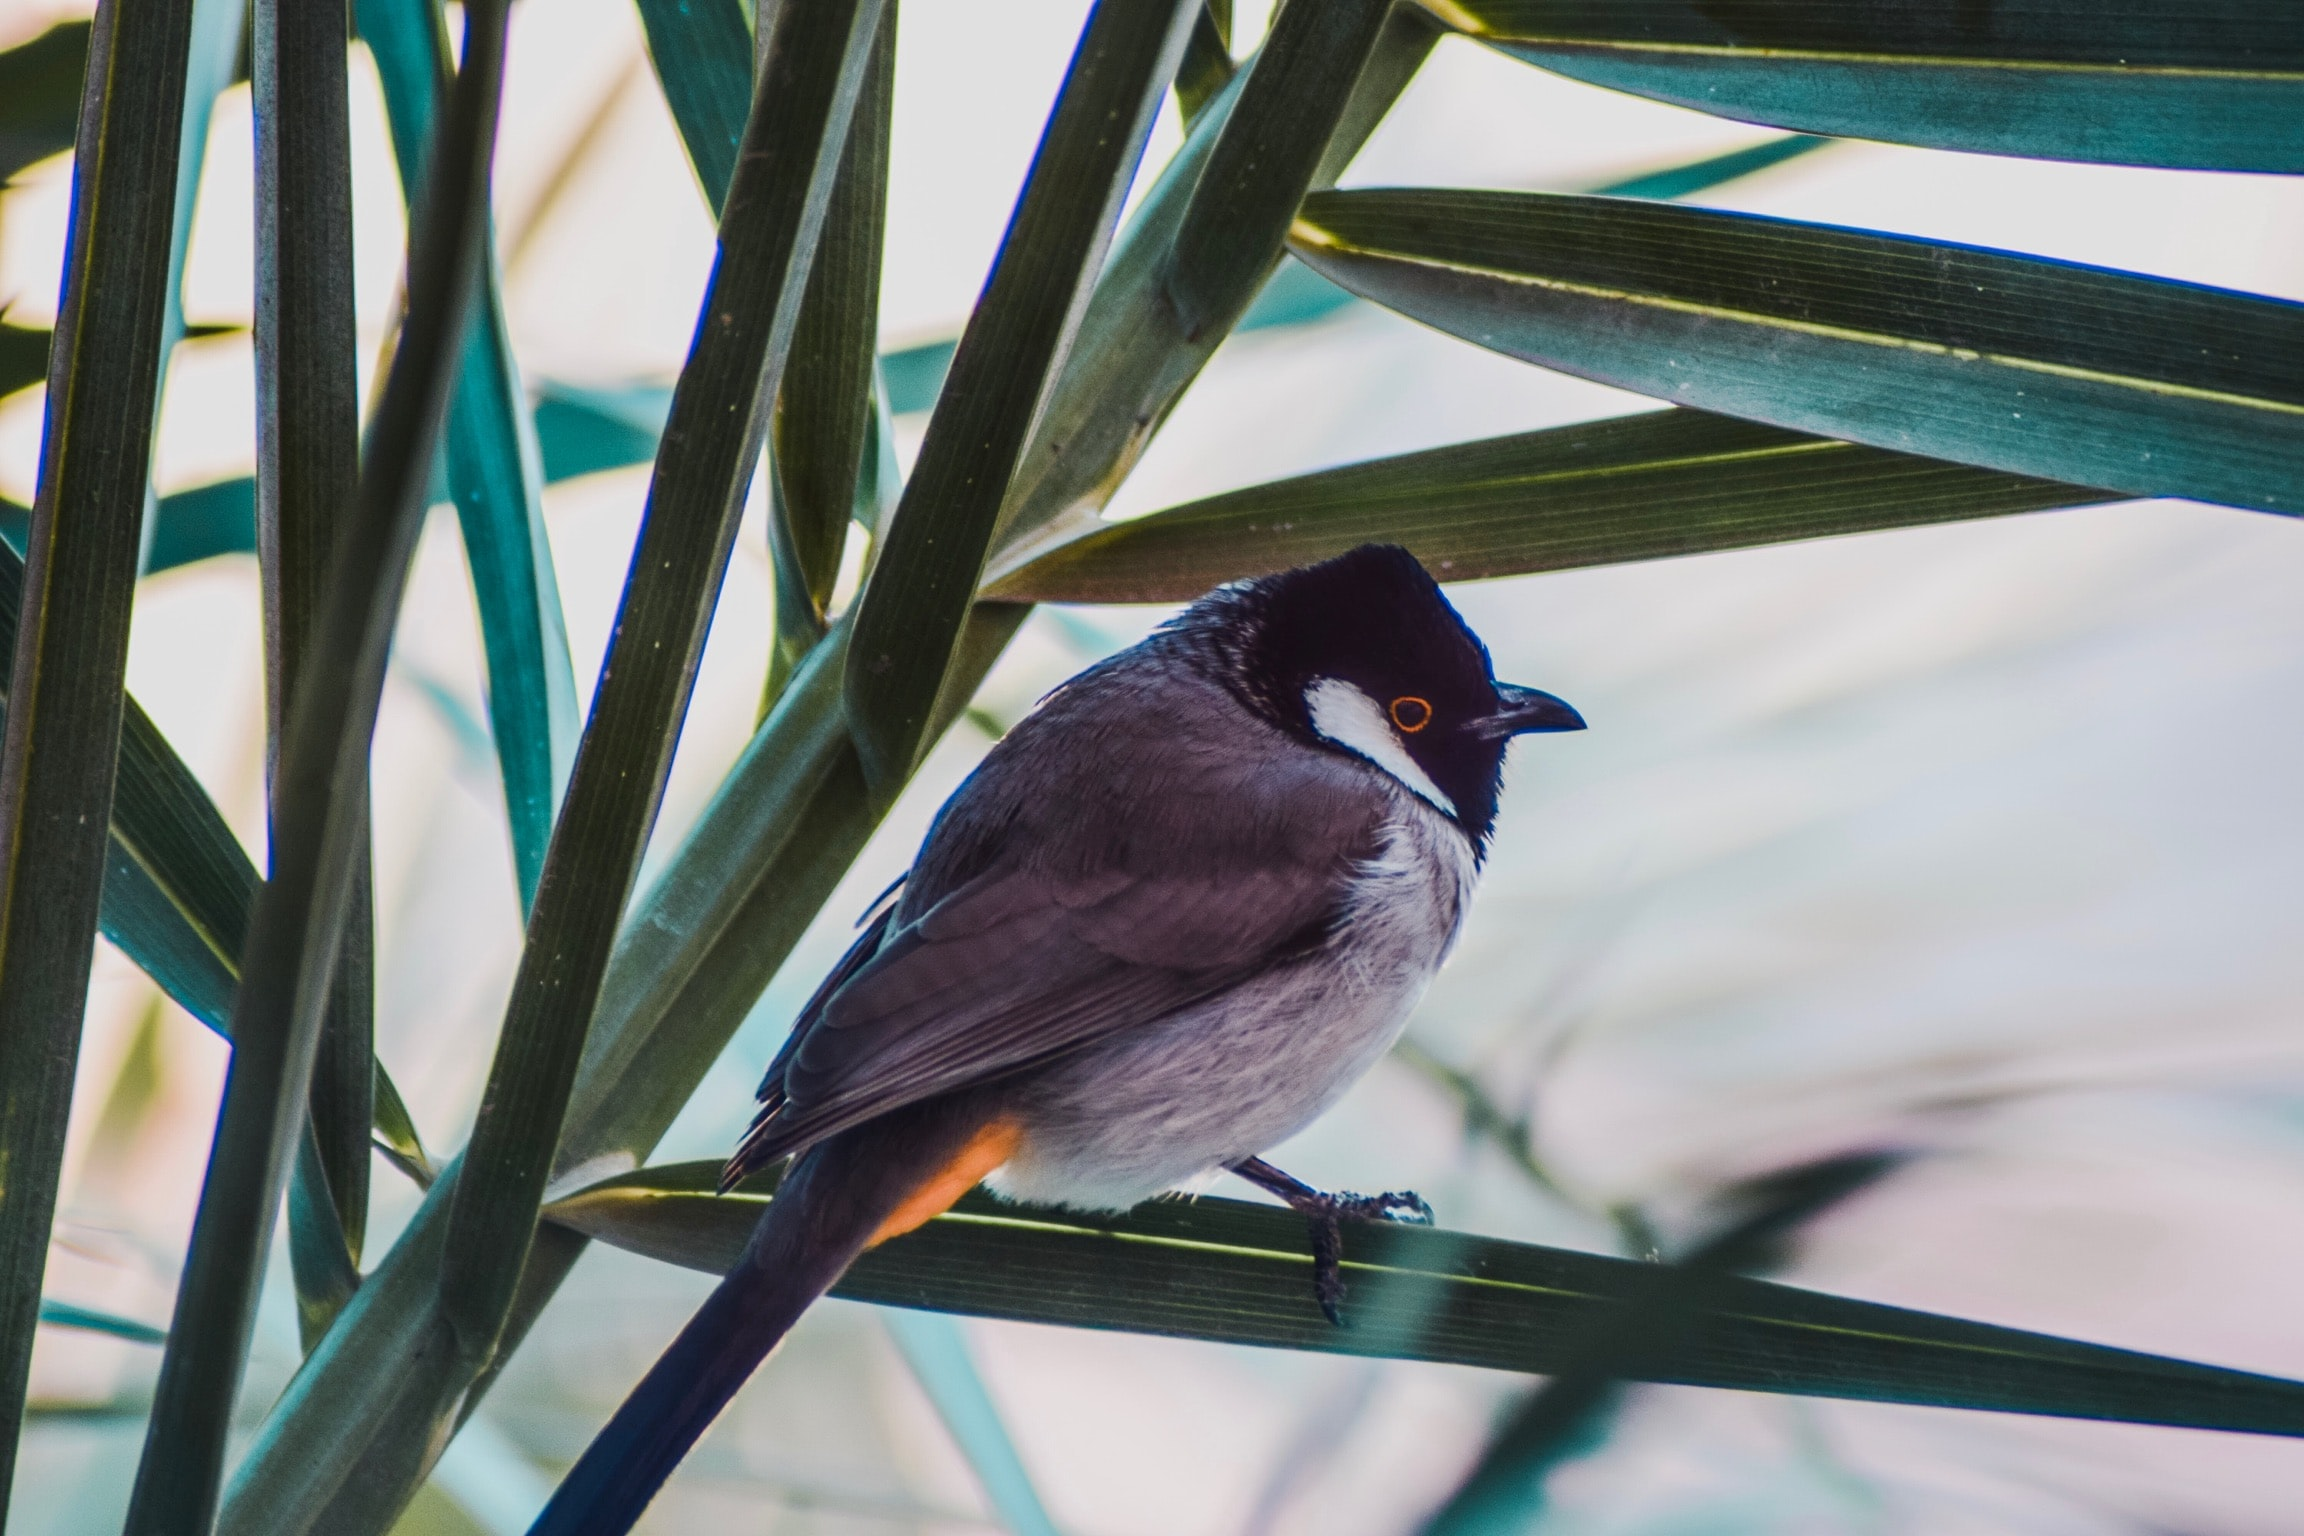 short-beaked grey and black bird perched on green leafed plant